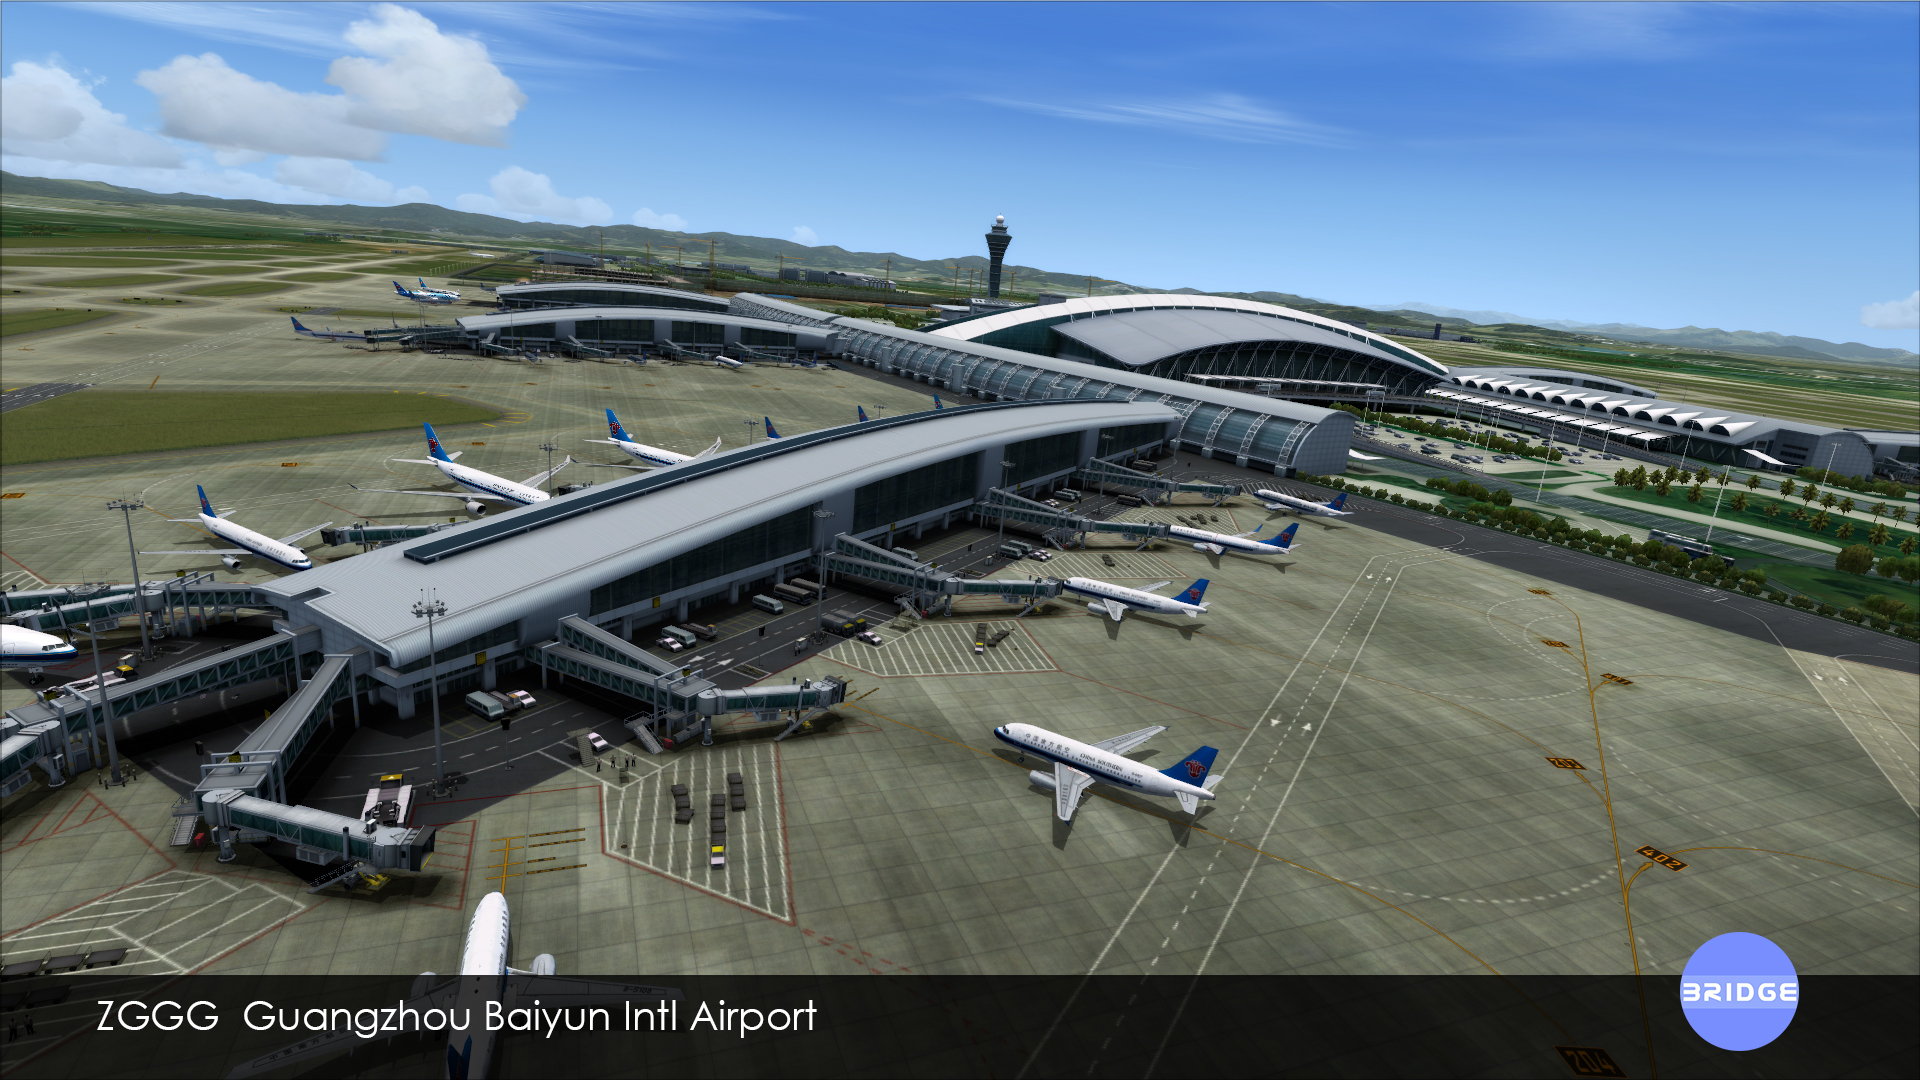 Airports List China - China Airport Codes (IATA / ICAO) All the Airports in China are listed below. For more information about any of these airports click on the airport name.